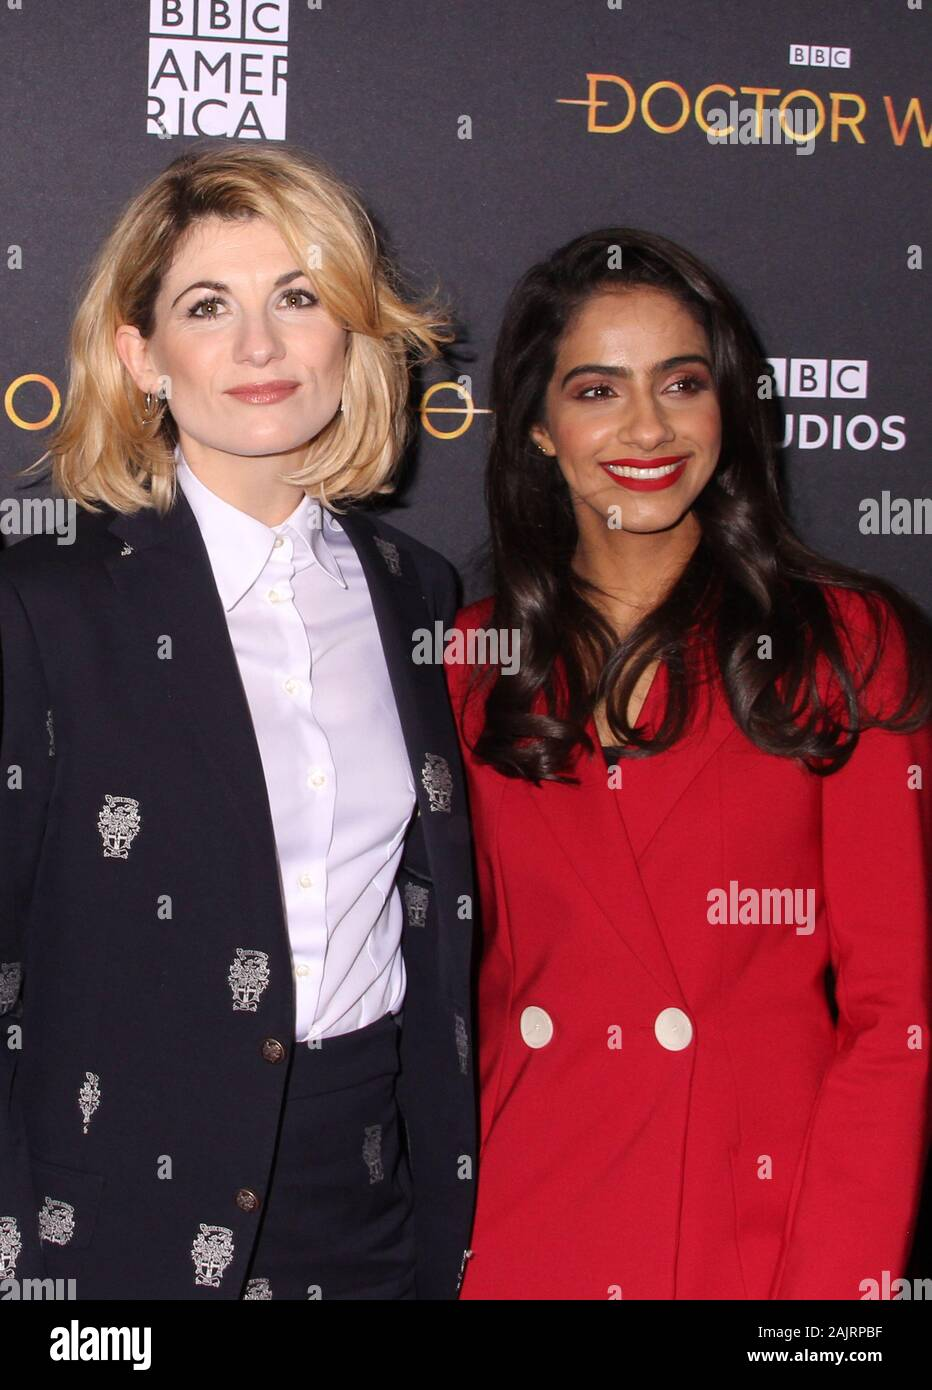 Bbc America Doctor Who Christmas Special 2020 New York, NY, USA. 5th Jan, 2020. Jodie Whittaker and Mandip Gill